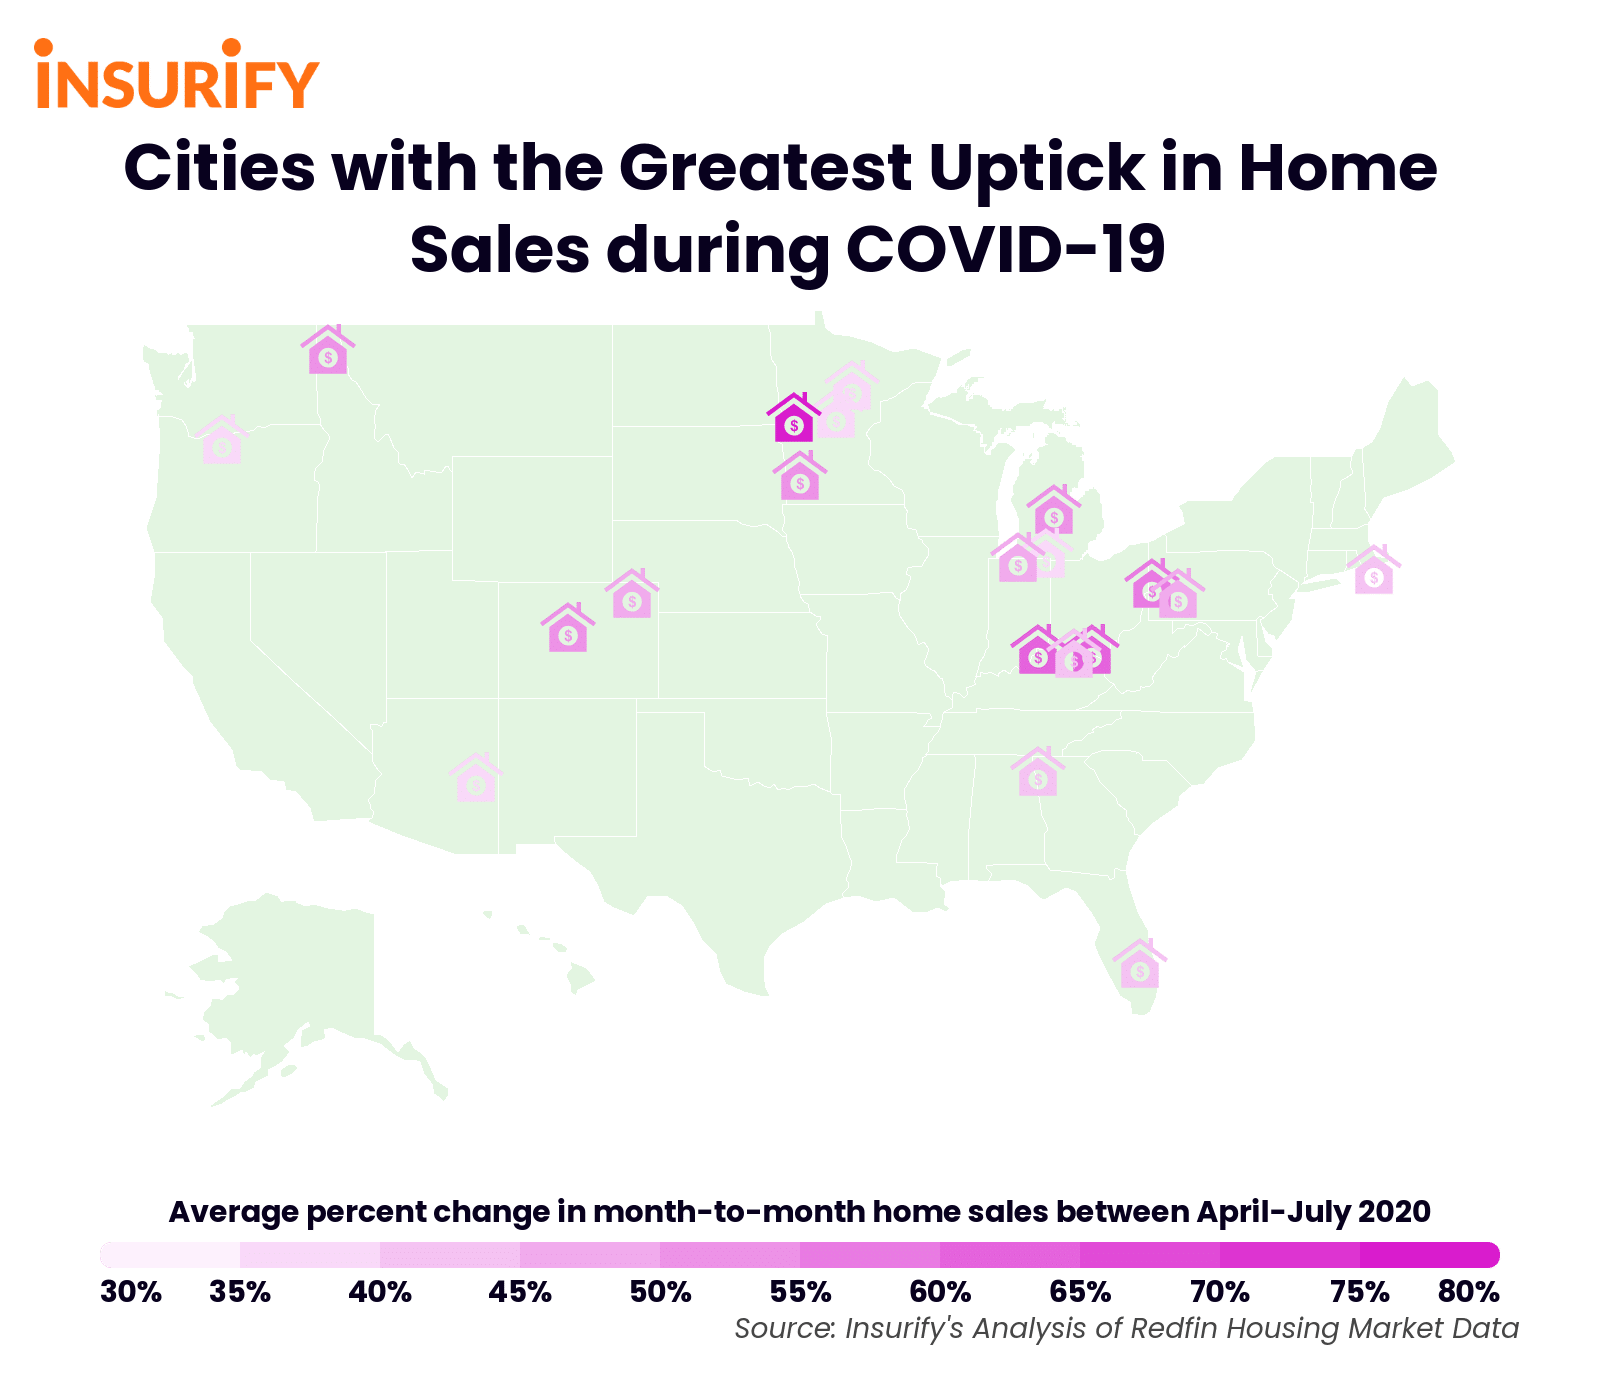 An icon map showing the twenty cities with the greatest surge in home sales during the COVID-19 pandemic.